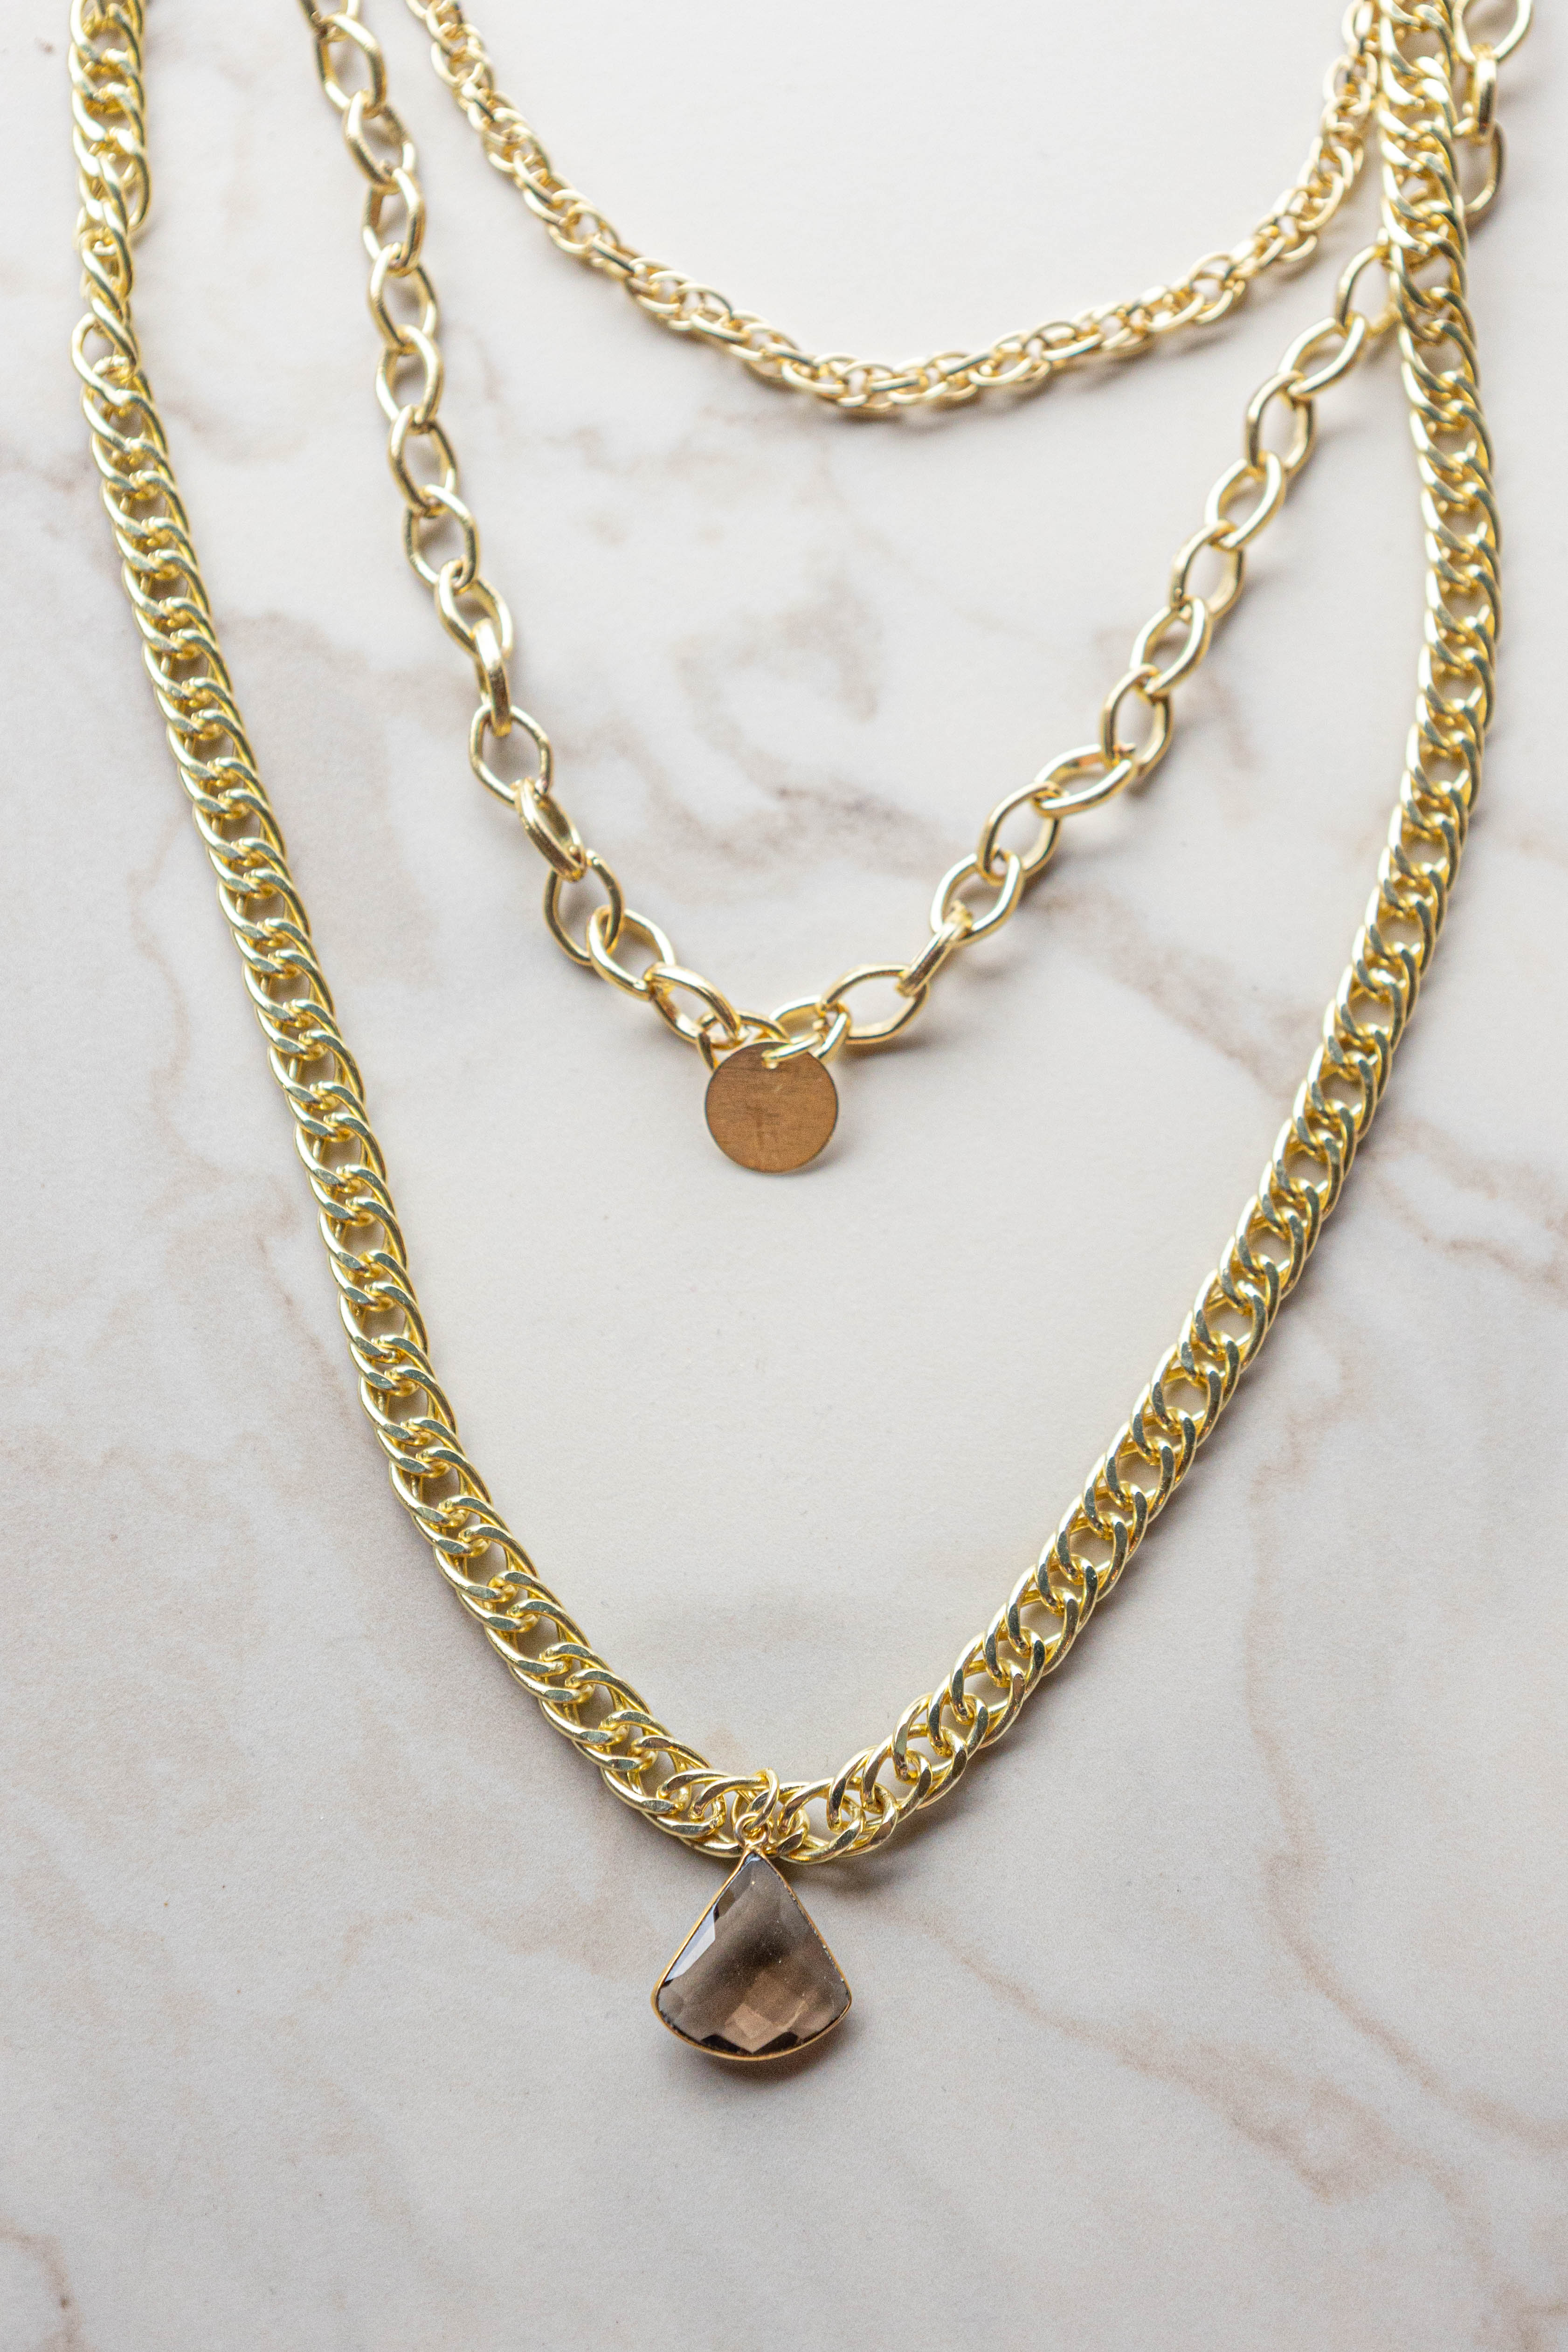 Gold Layered Chain Necklace with Stone Pendant